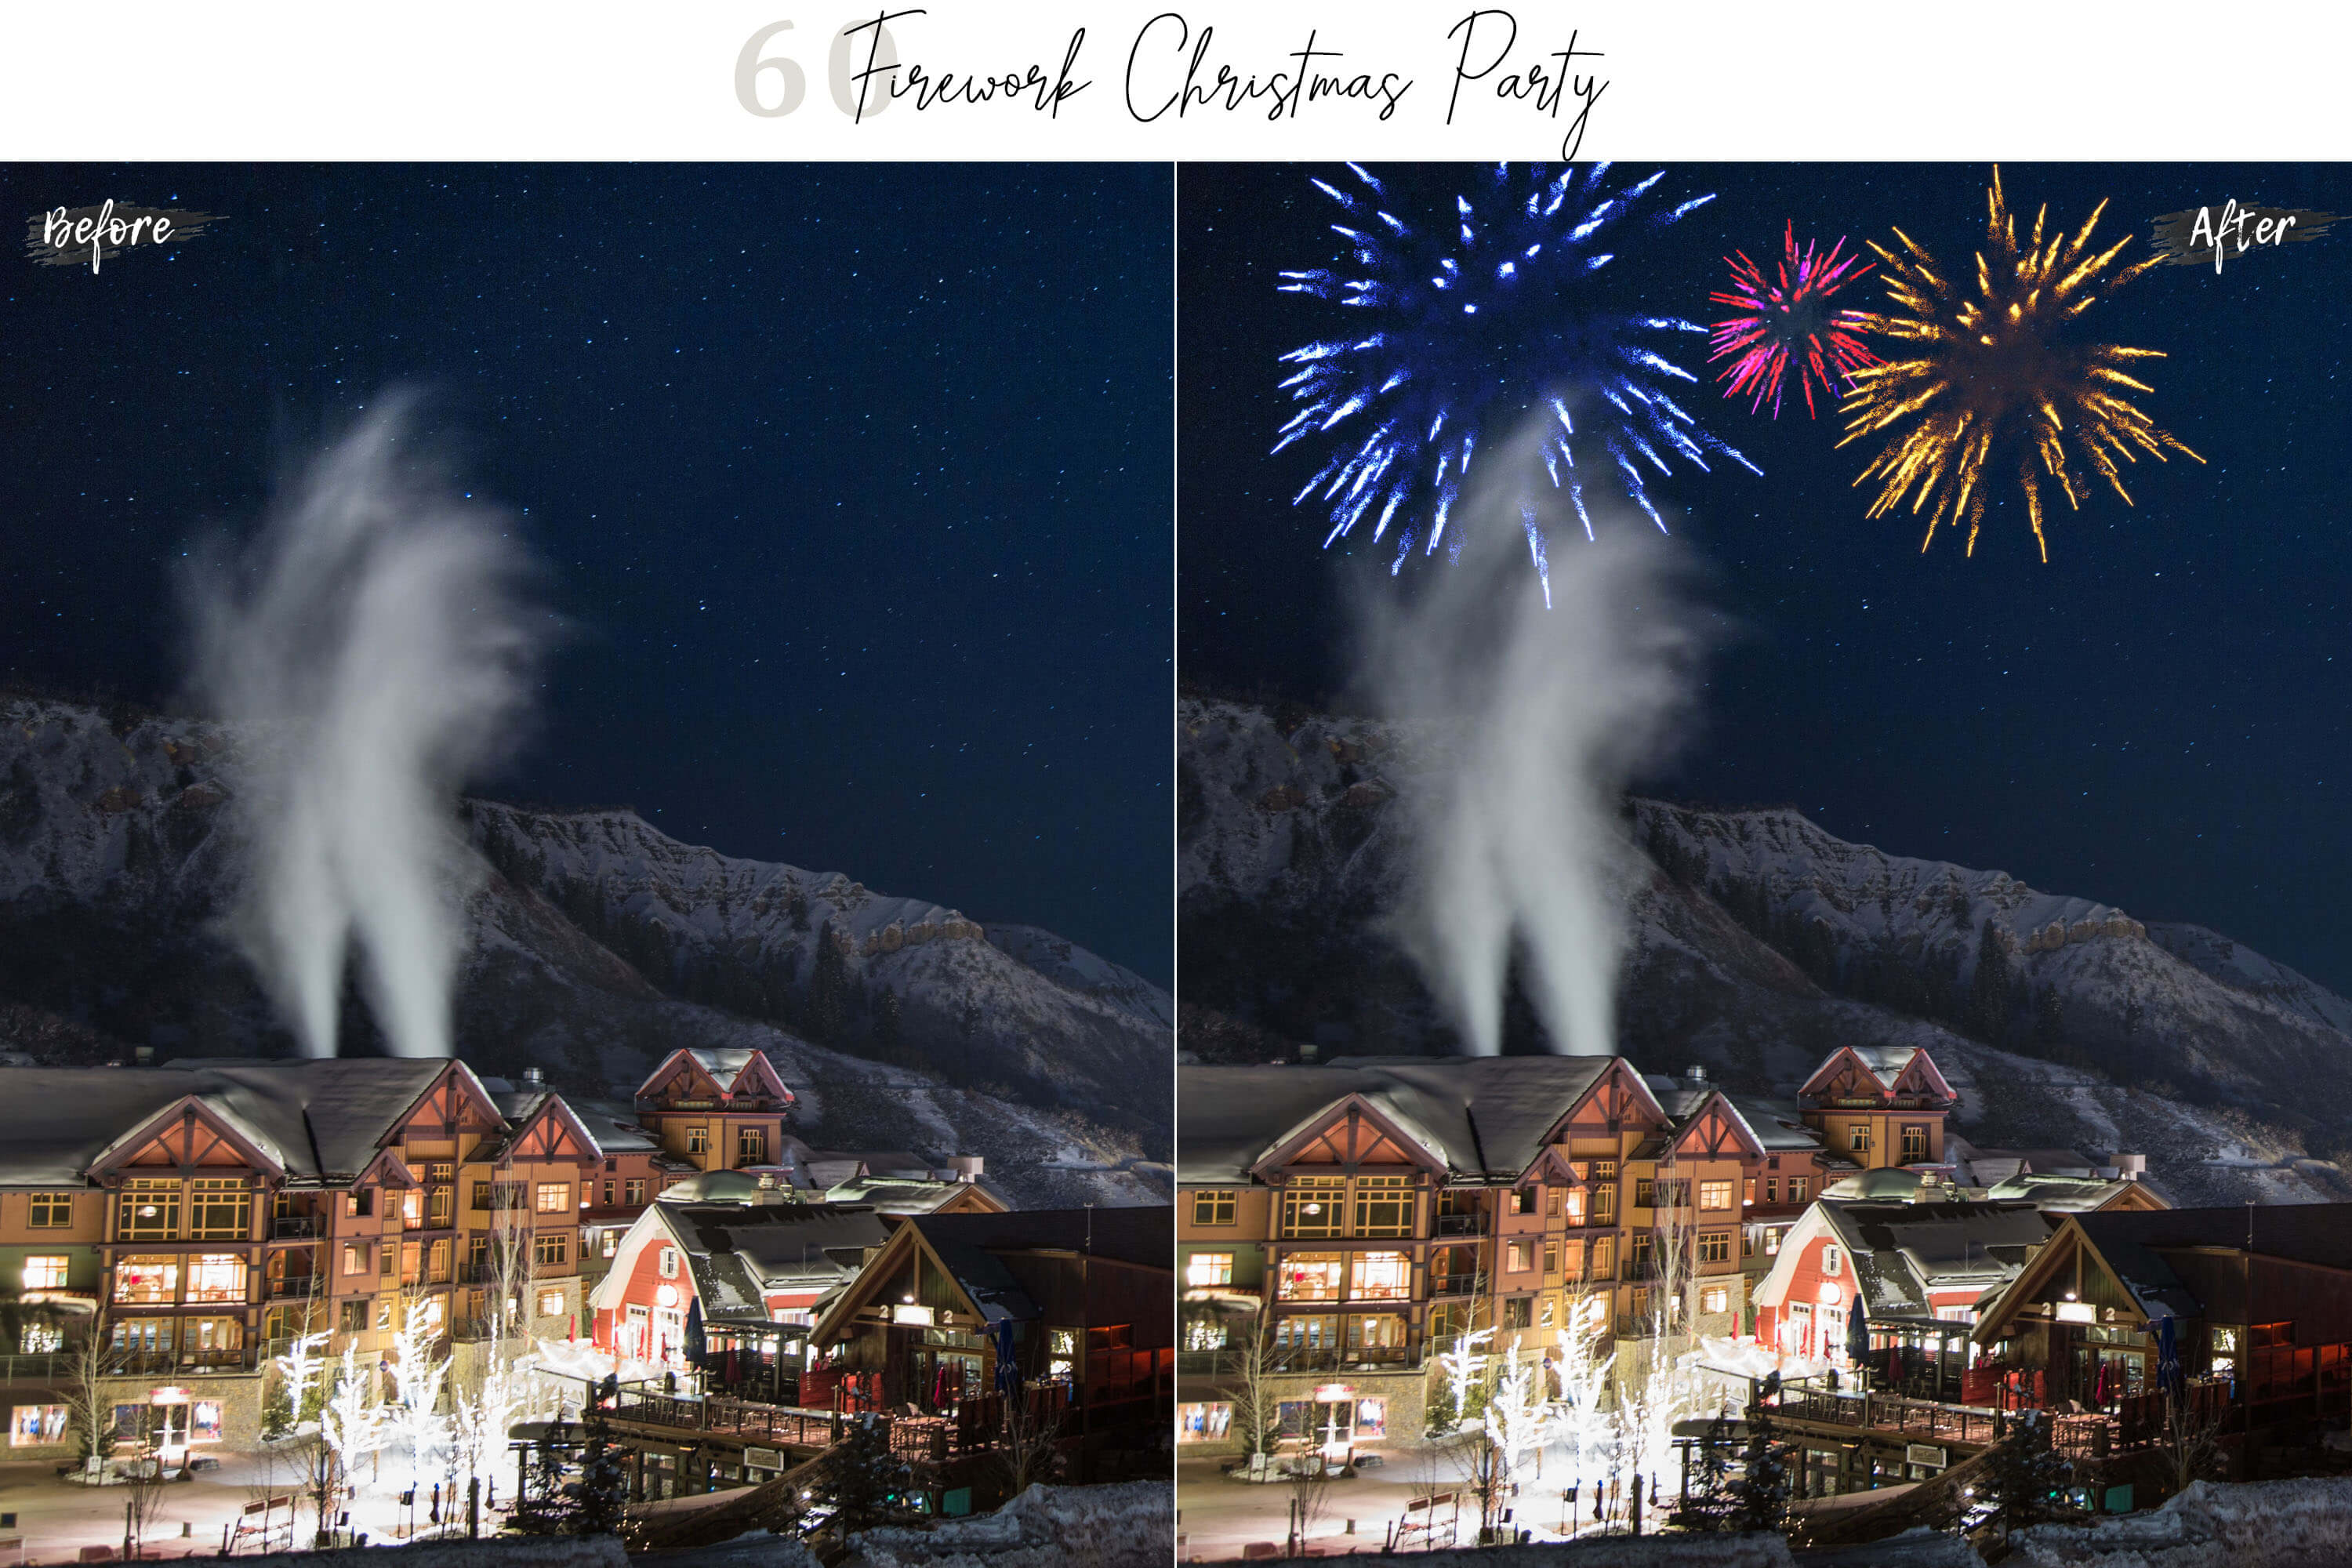 60 Firework Christmas Party Overlays example image 7